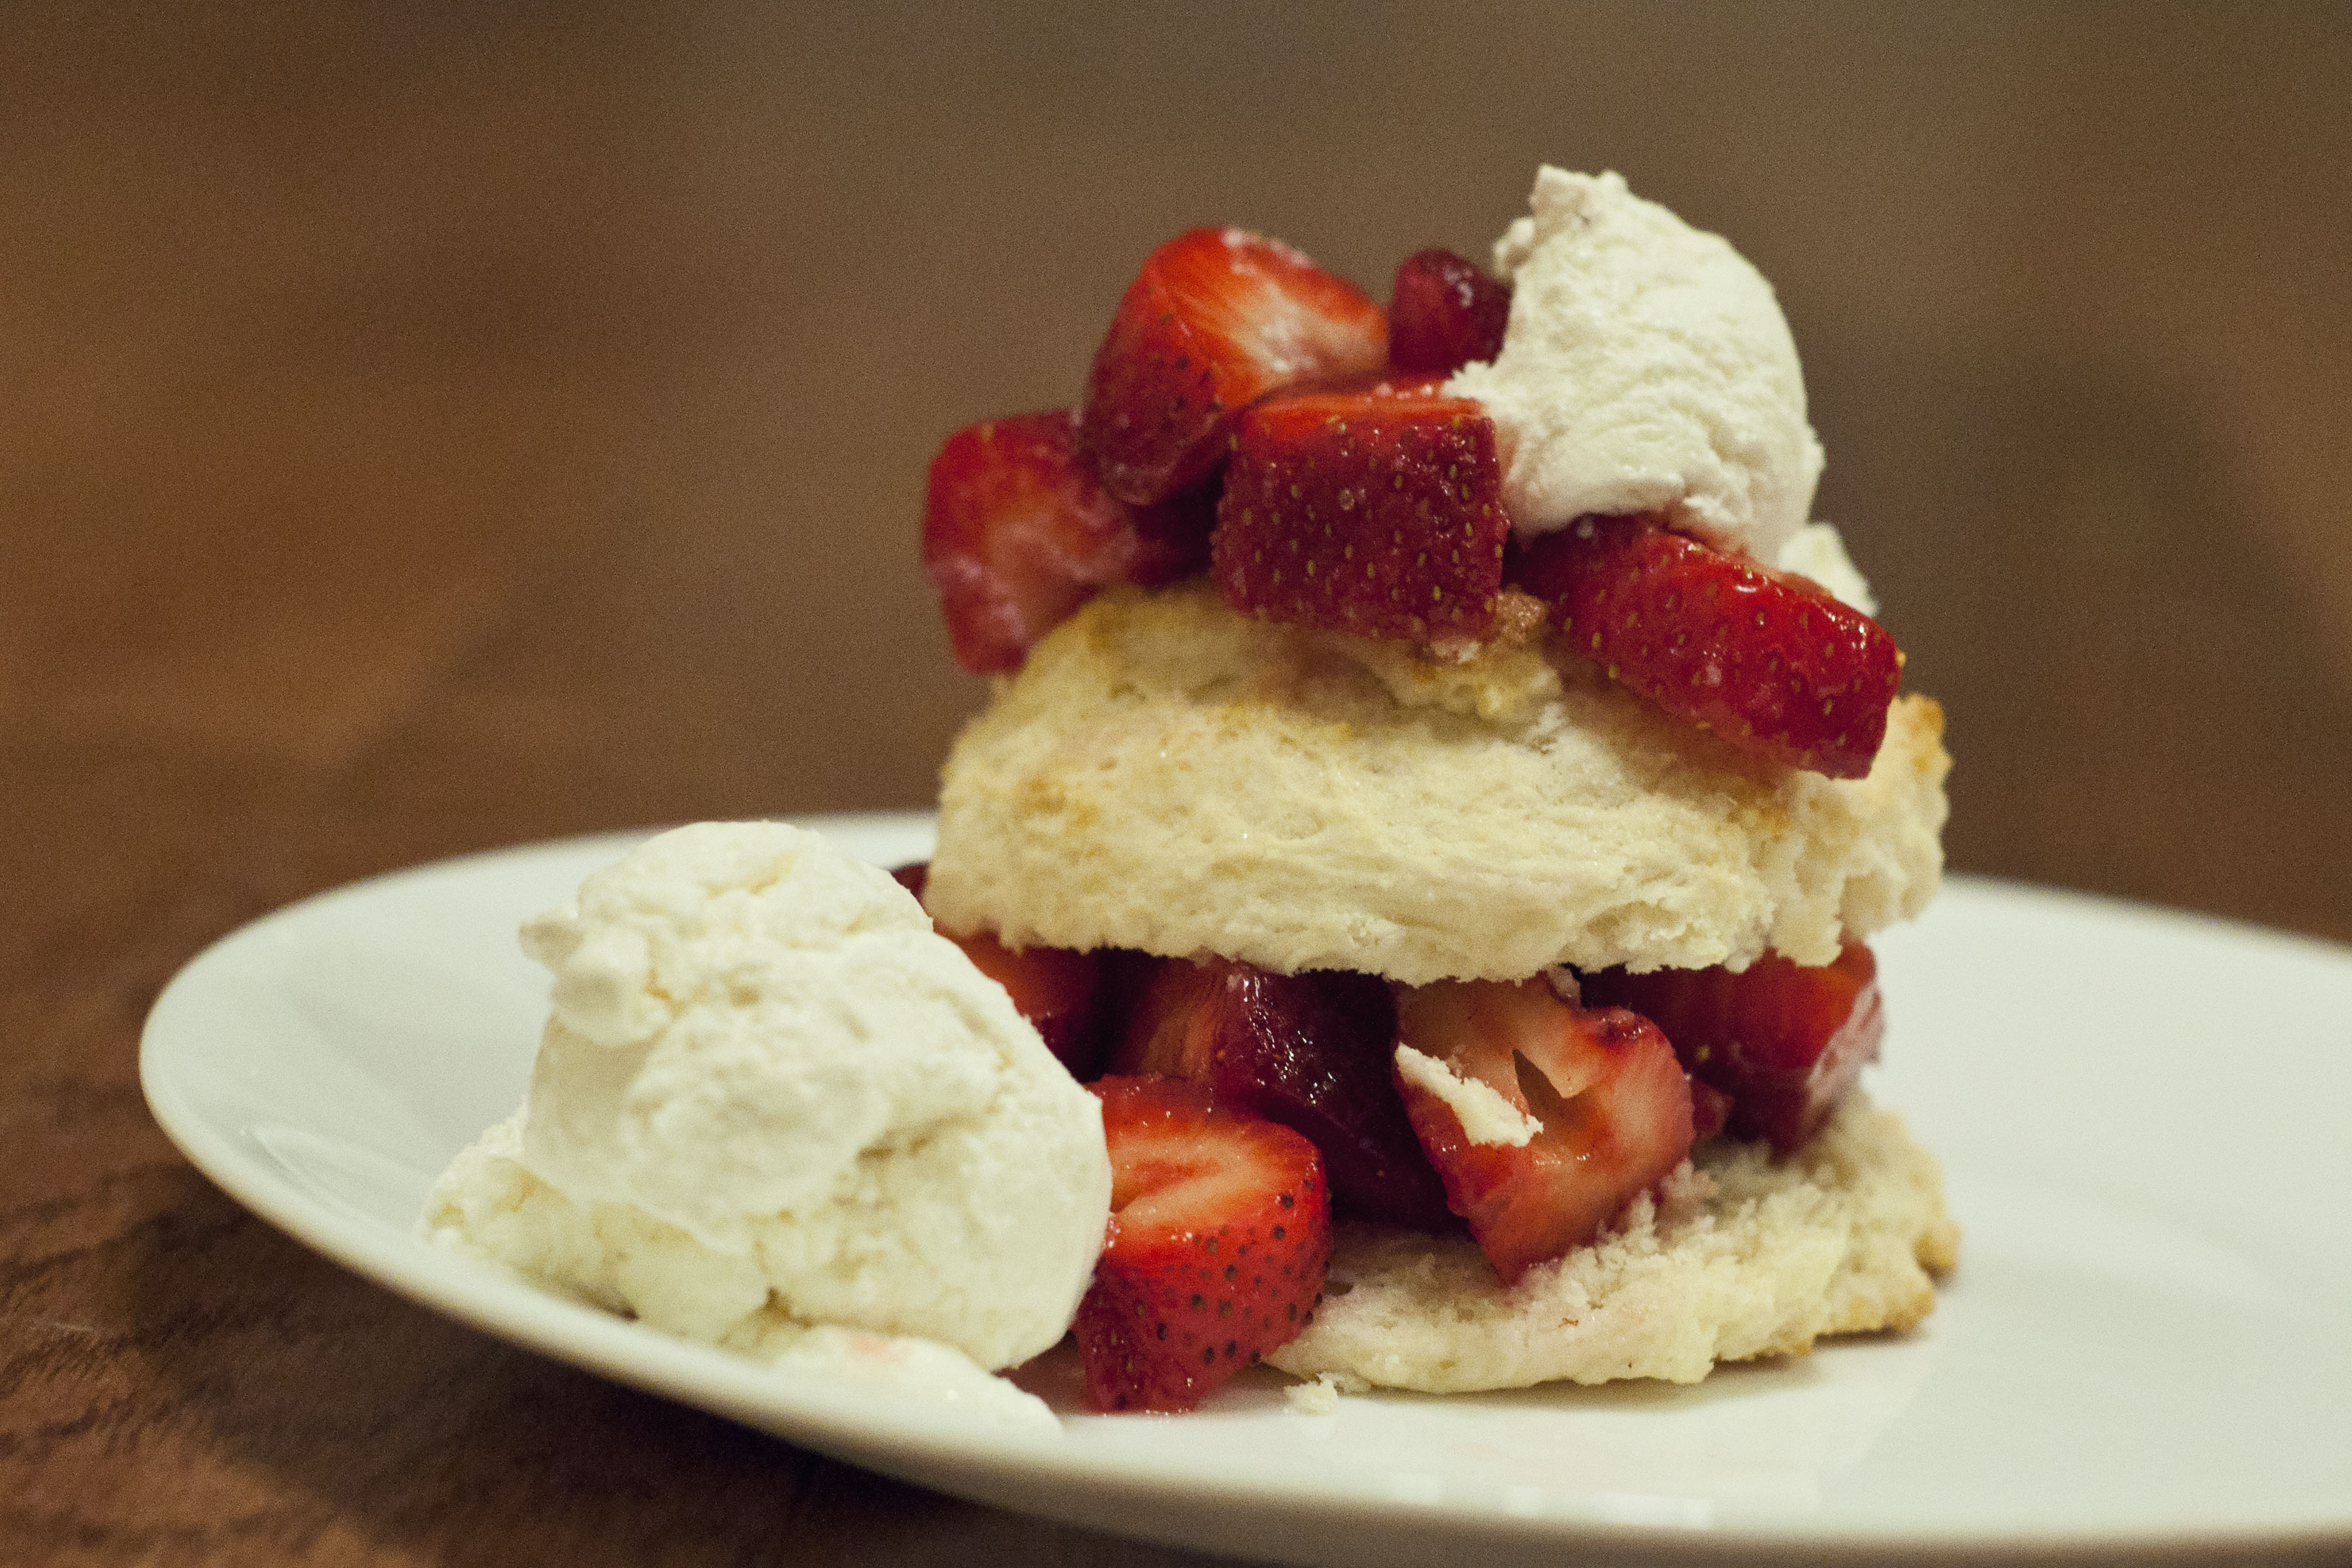 arkansas strawberries, strawberry shortcakes, easy strawberry shortcakes, bisquick recipe, truvia recipe, stevia recipe, easy dessert, recipe, cooking, food, taste arkansas